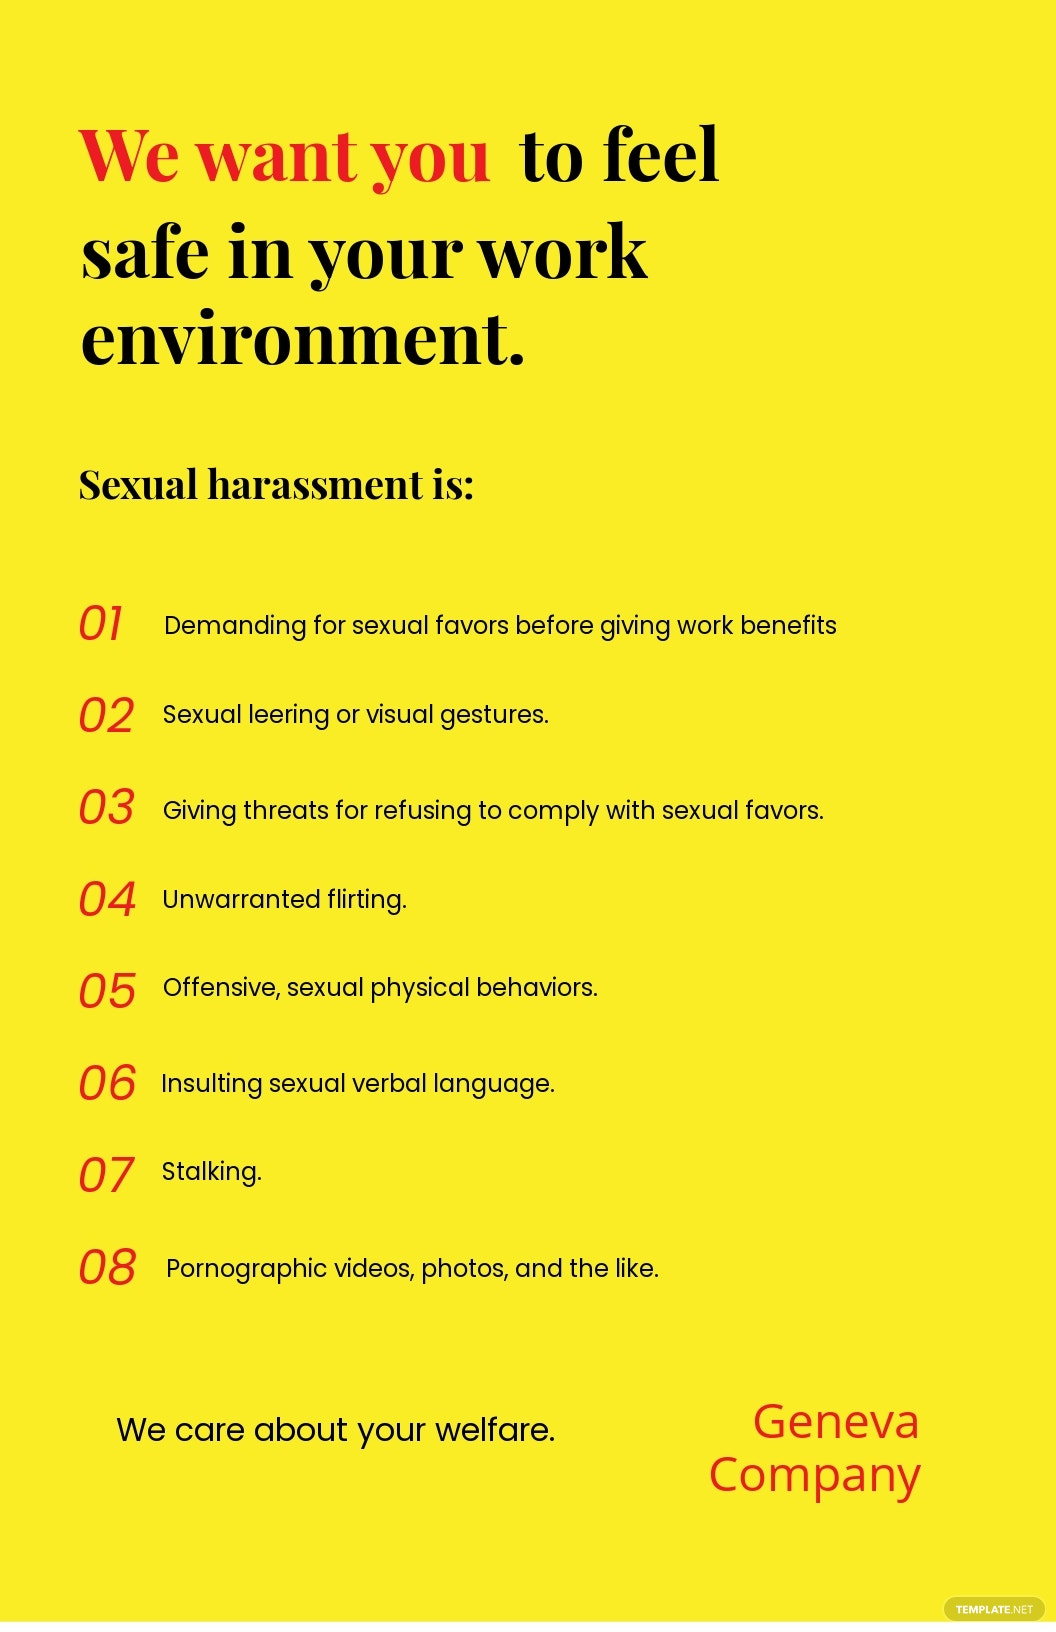 POSH (prevention of sexual harassment) Poster Template.jpe